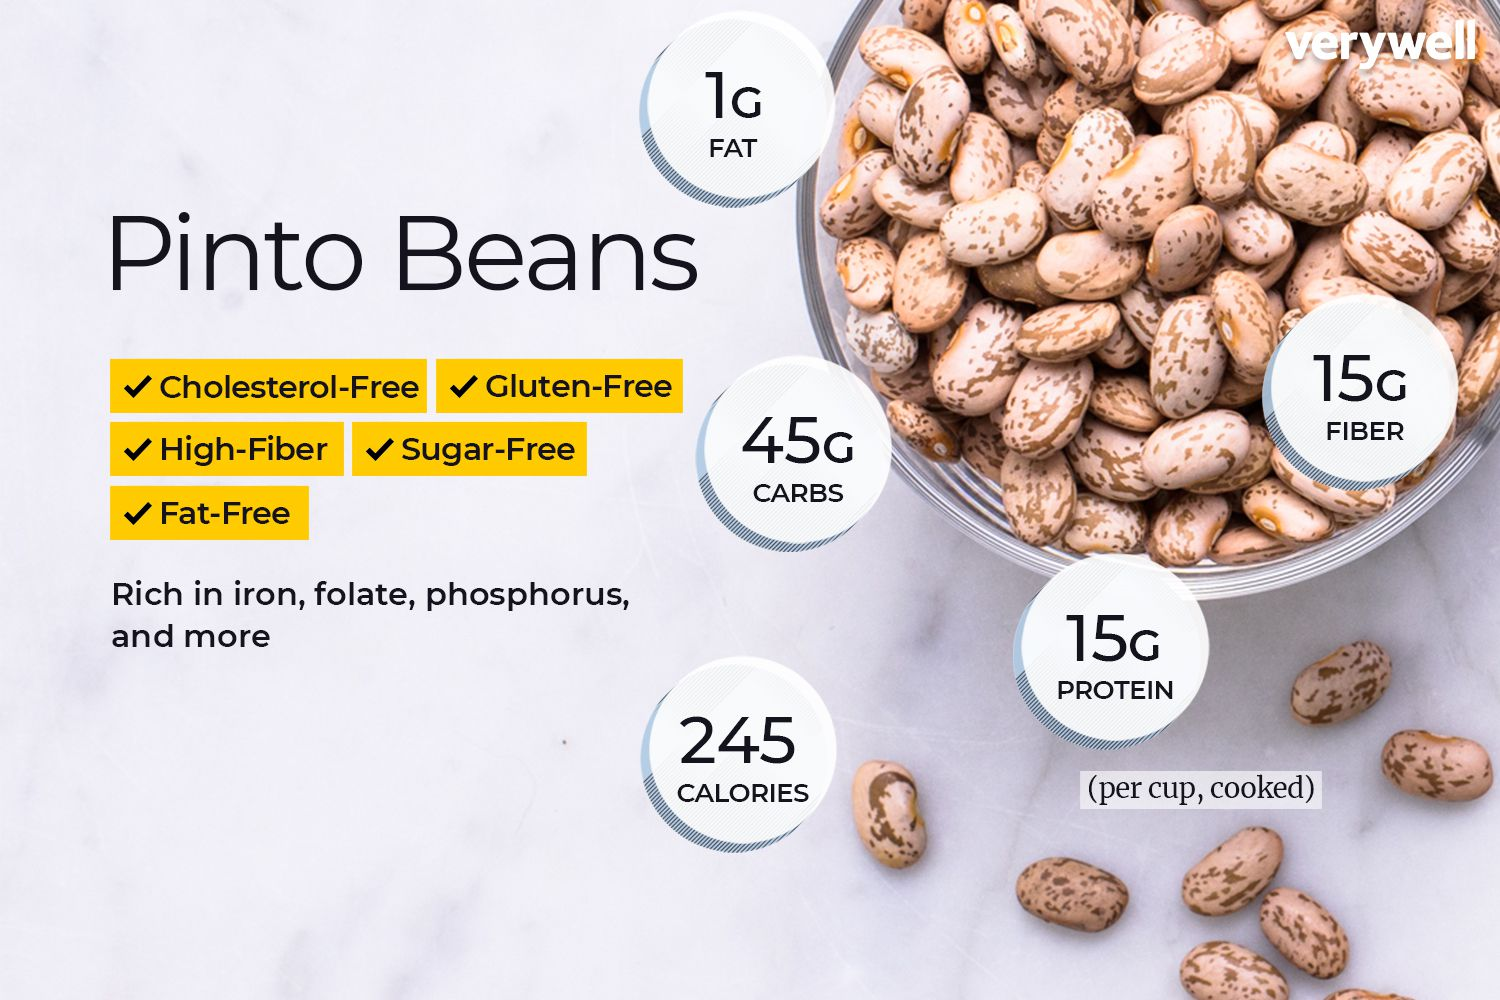 Pinto Bean Nutrition Facts and Health